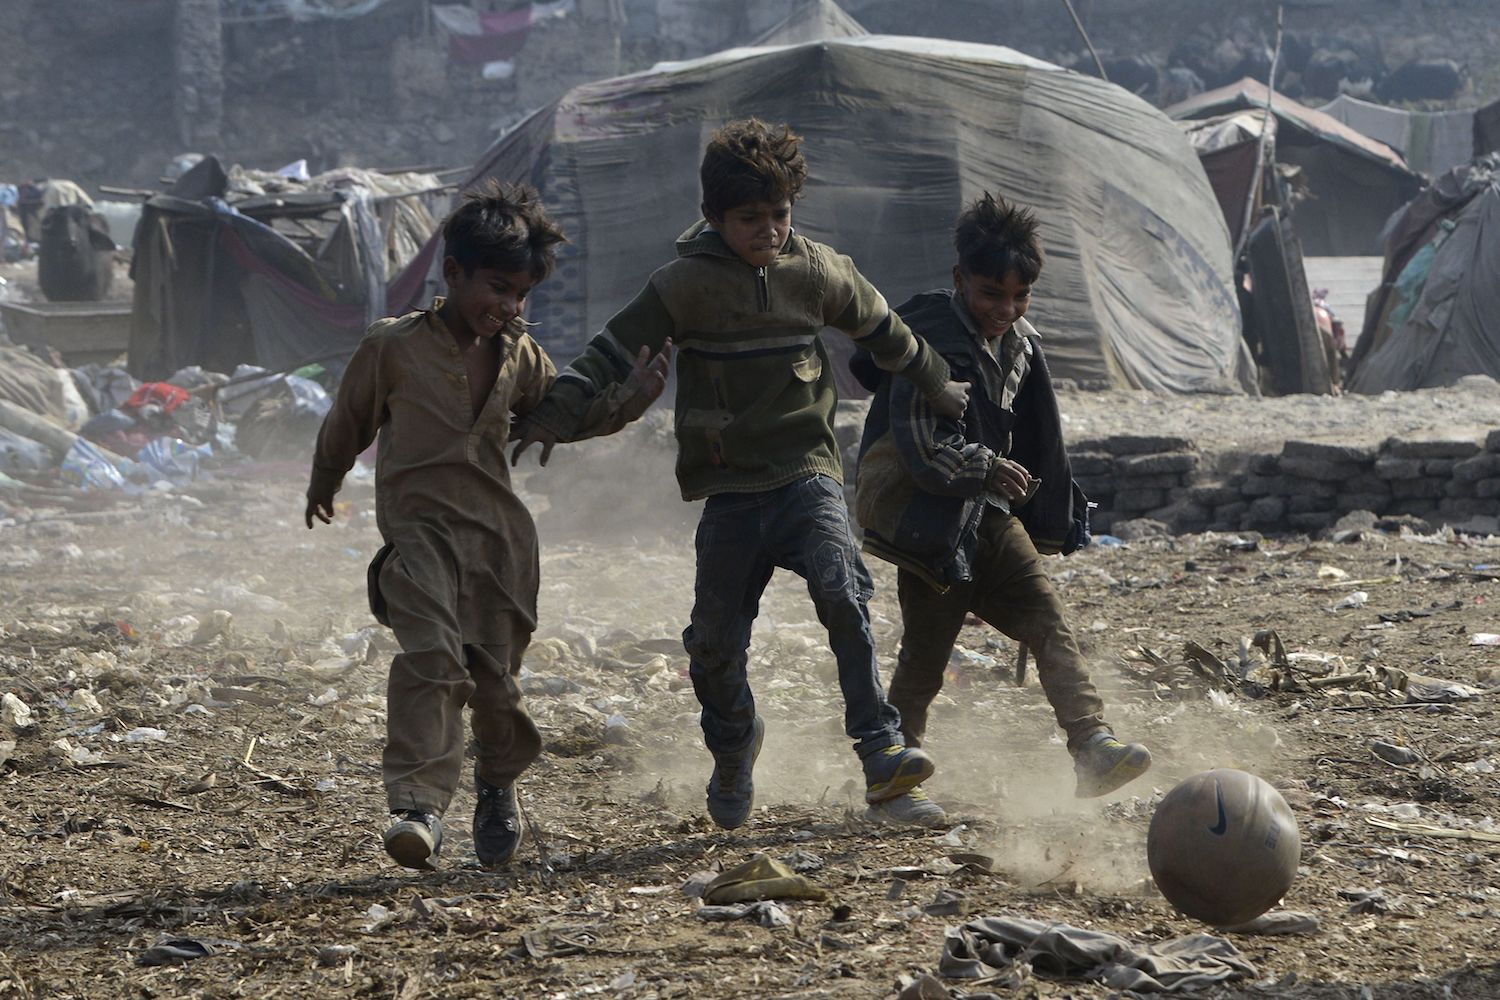 TOPSHOT - Pakistani children play football at a slum in Lahore on January 30, 2018. / AFP PHOTO / ARIF ALI        (Photo credit should read ARIF ALI/AFP/Getty Images)